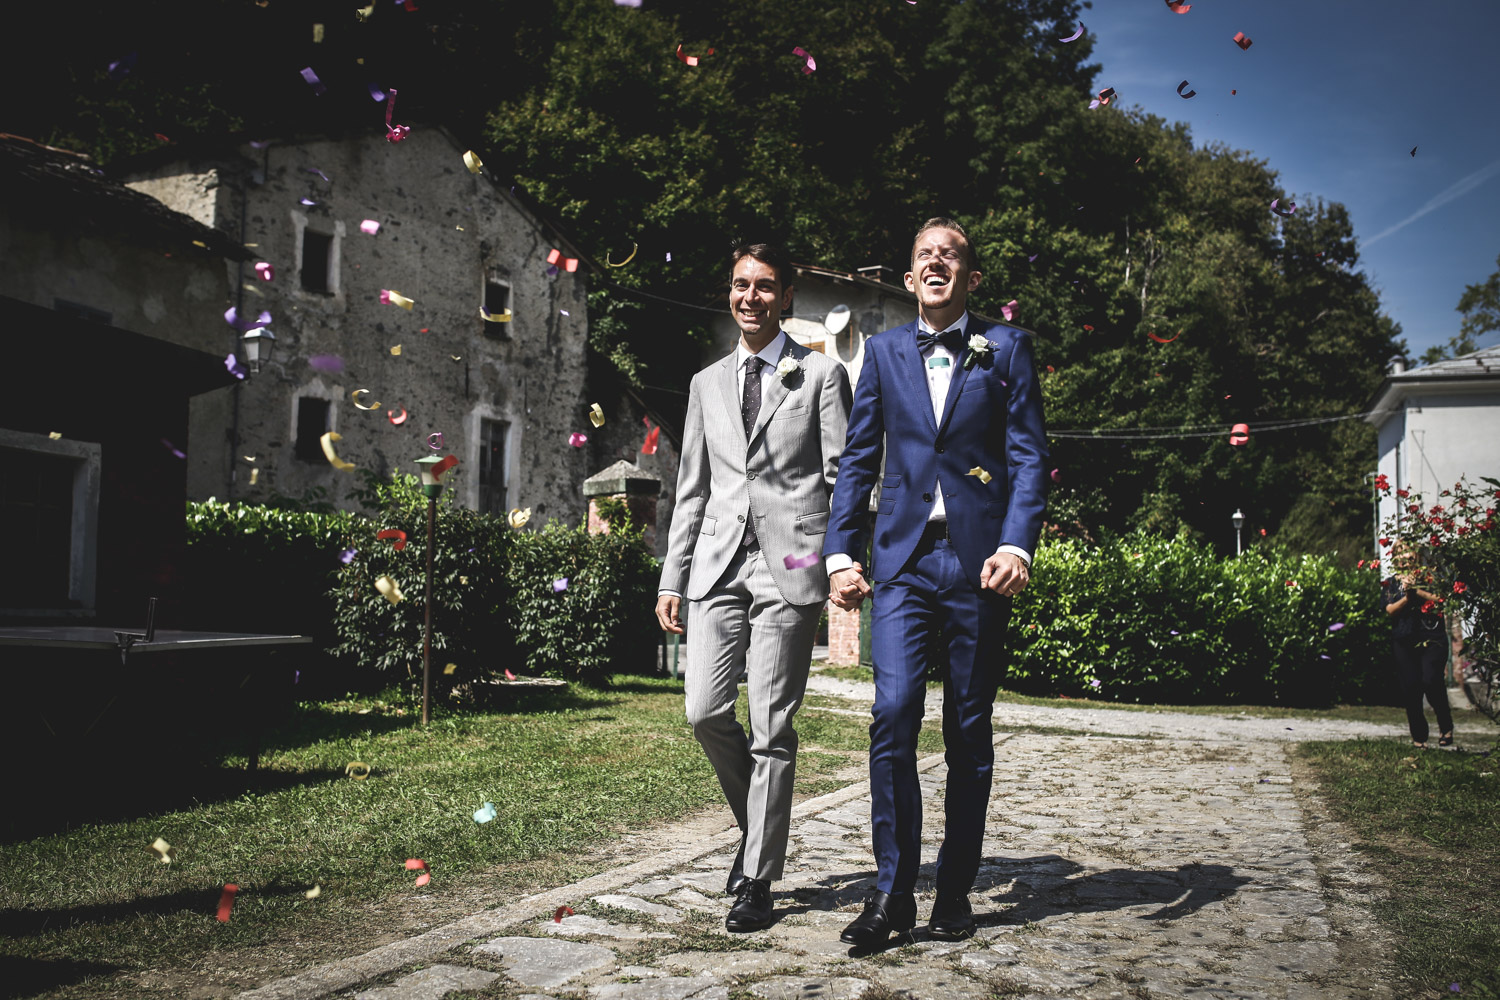 monica-sica_photography_trattoria-revelli_wedding-gay_torino_day_61